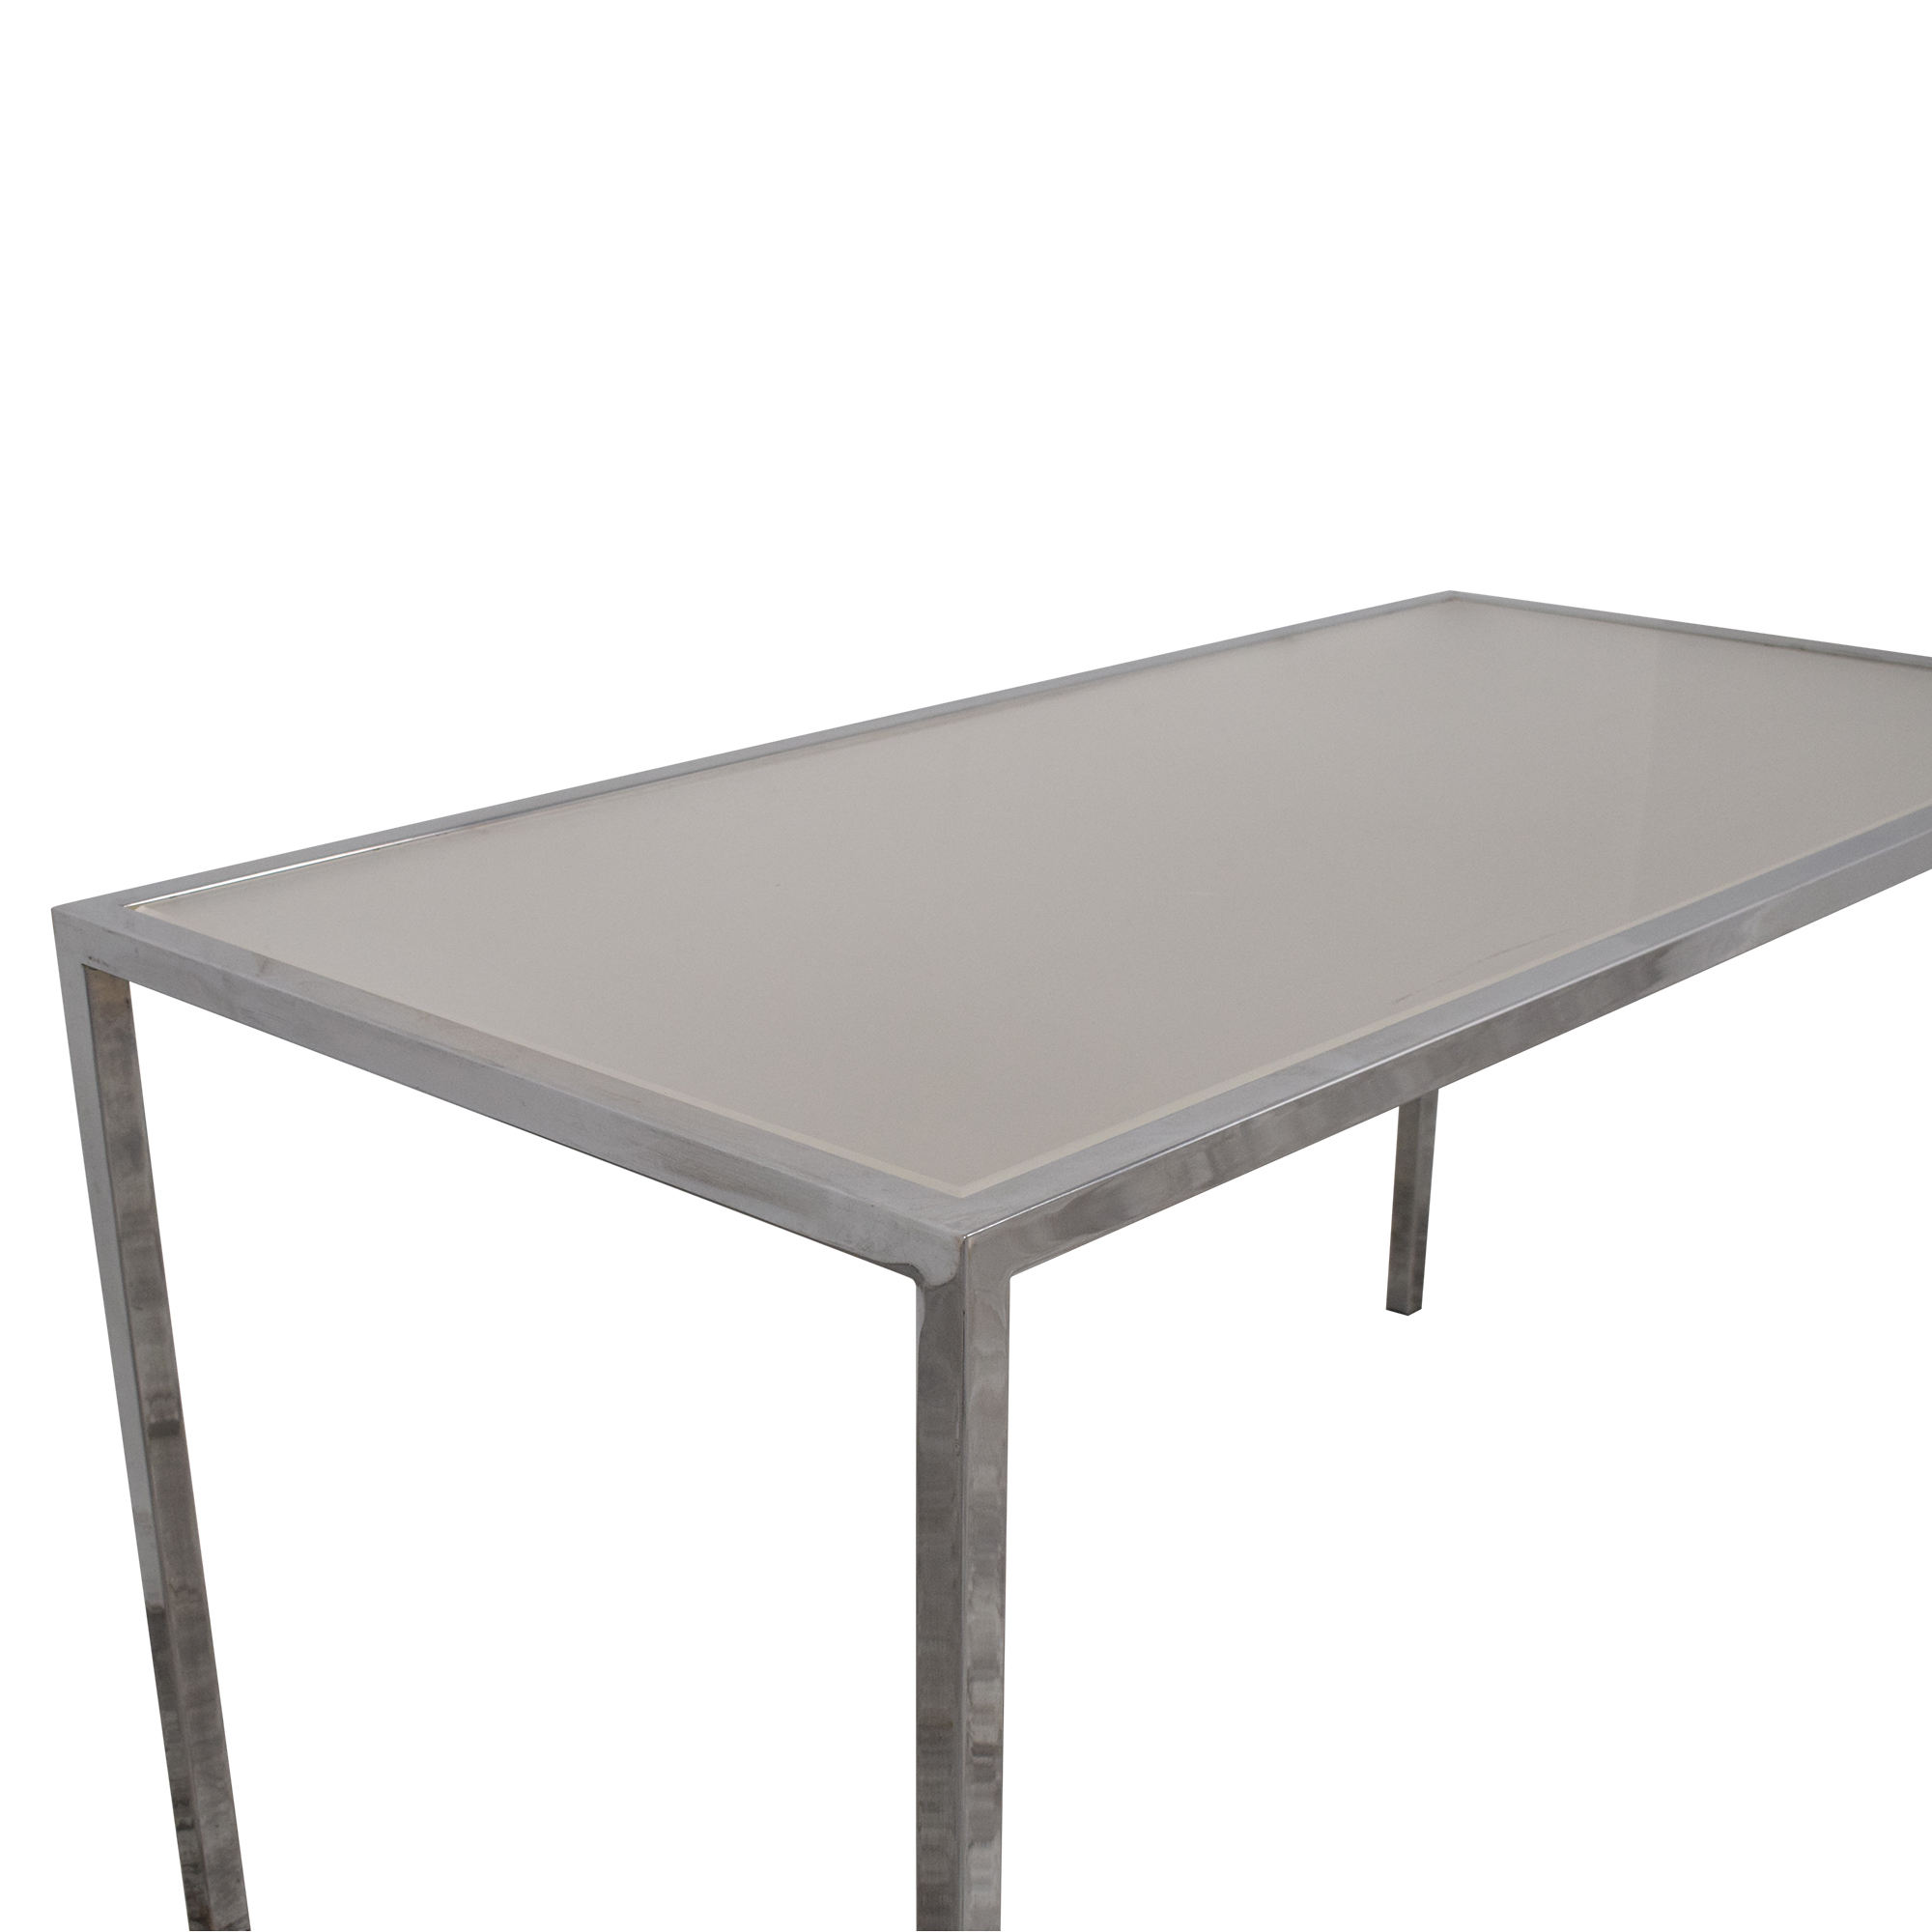 buy  Chrome Base Dining Table with Sunken Glass Top online